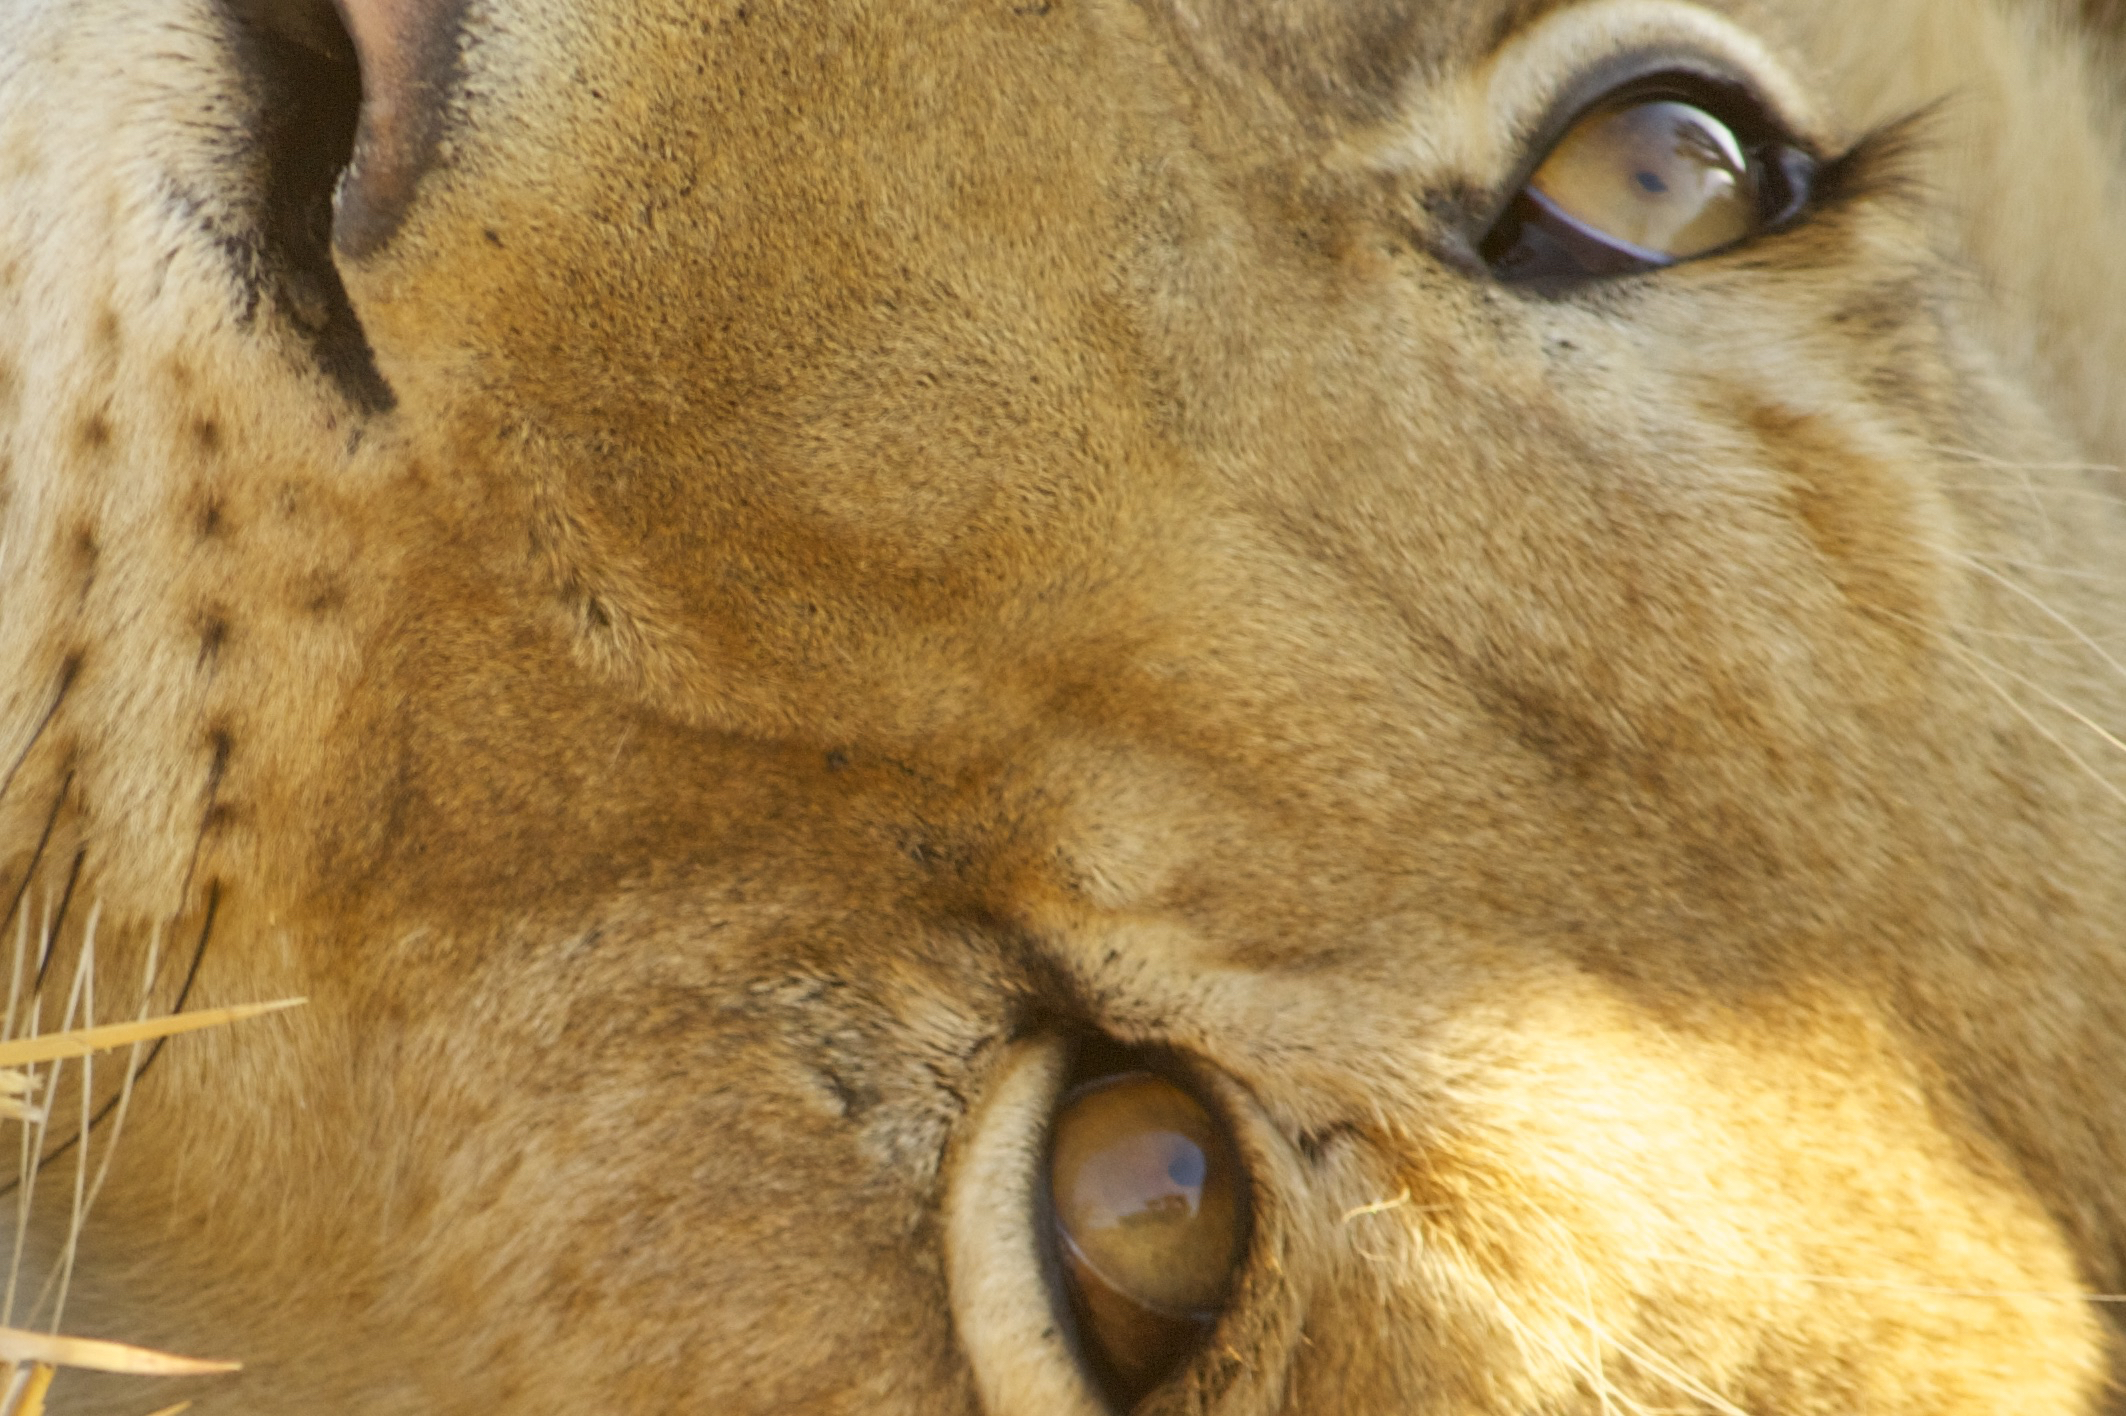 Look into my eye and you will see that I see you...Look at the safari car in my left eye...